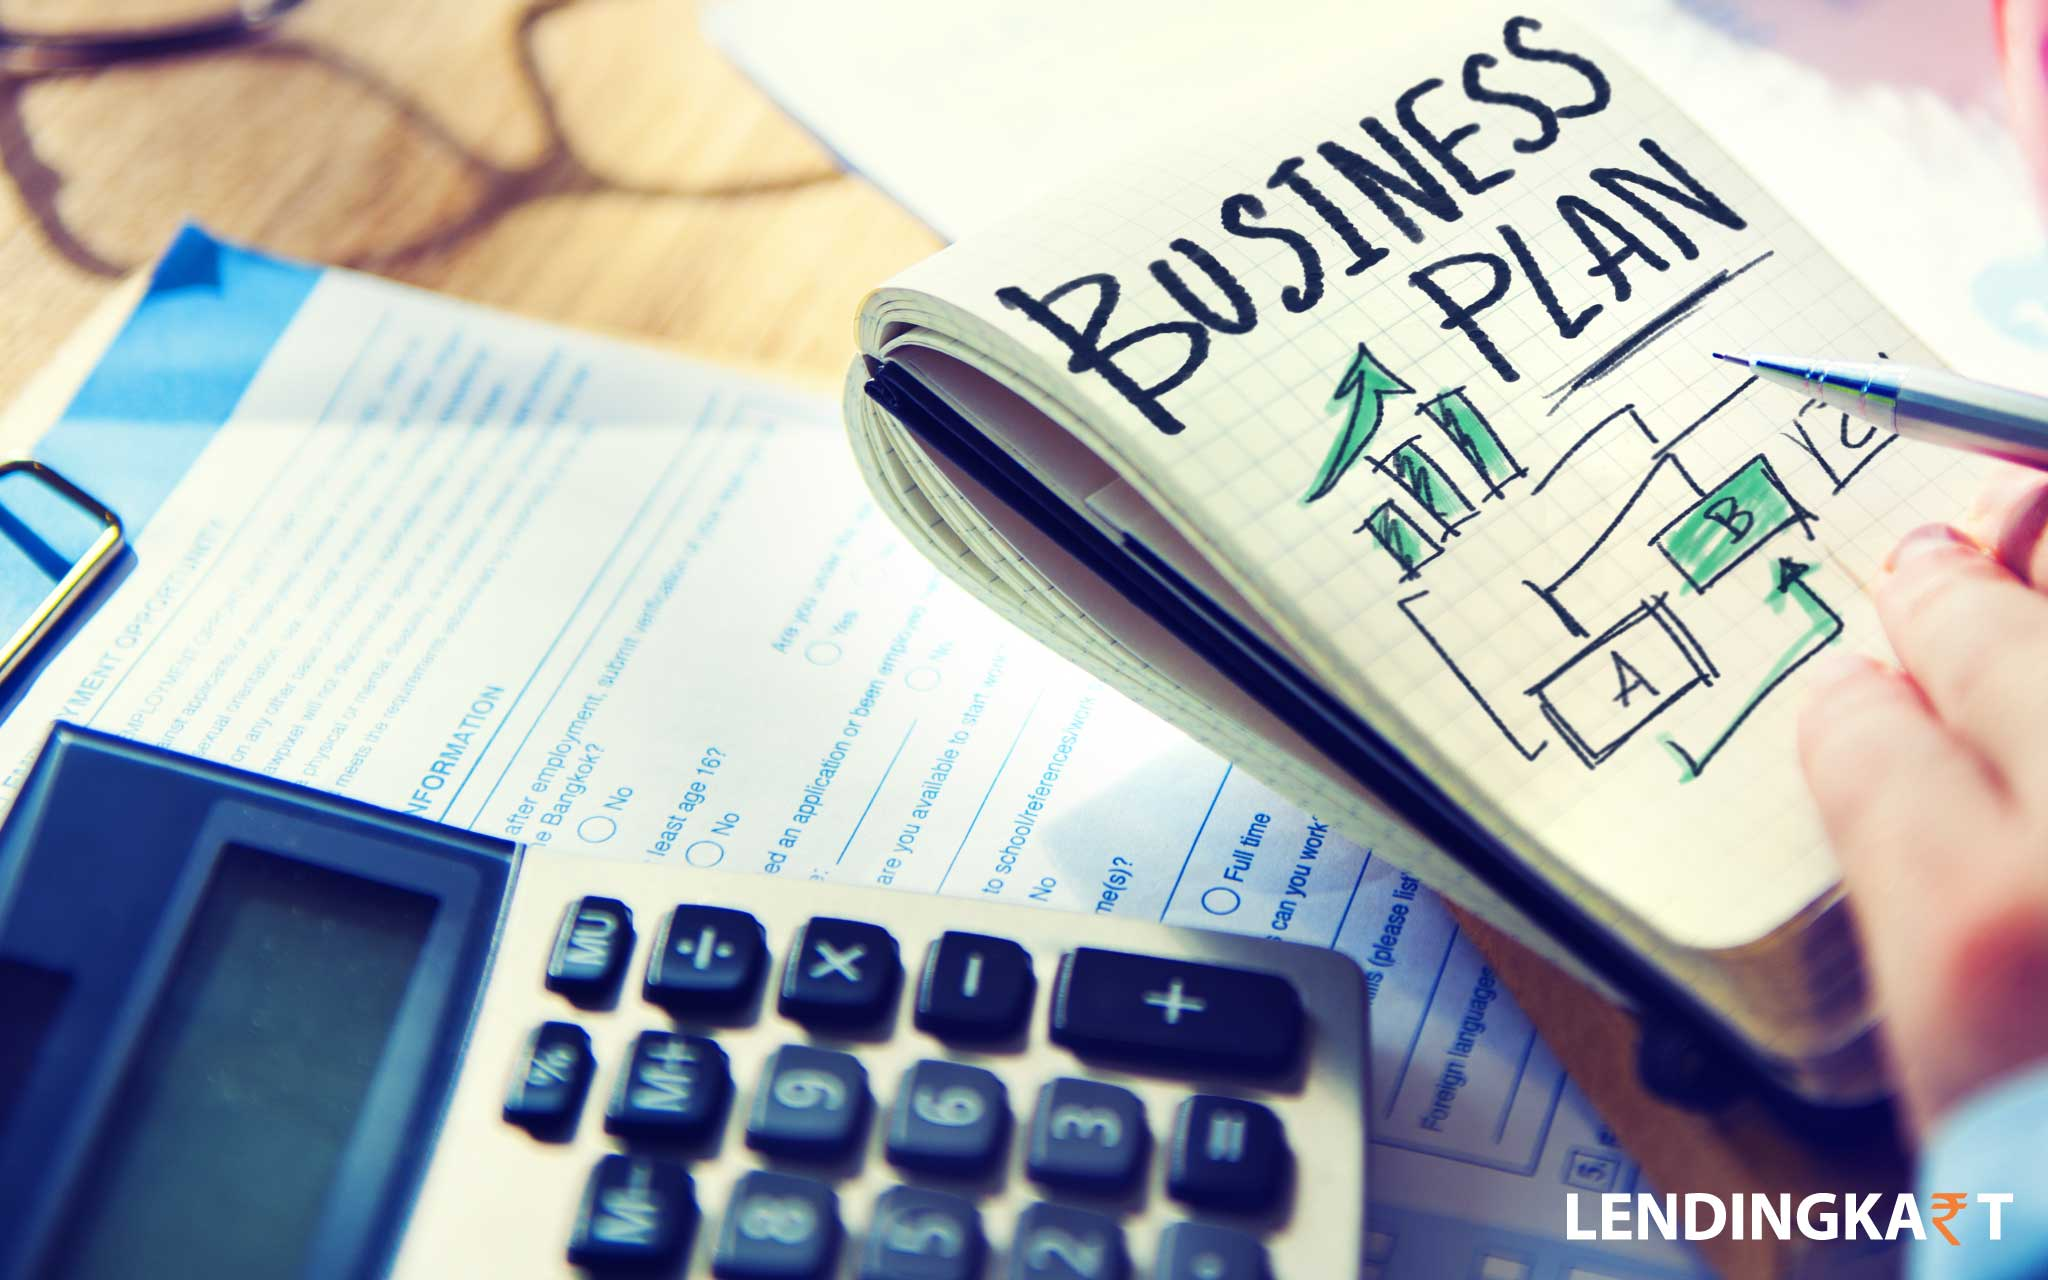 6 Amazing Ways to Execute Ideas for Small Businesses